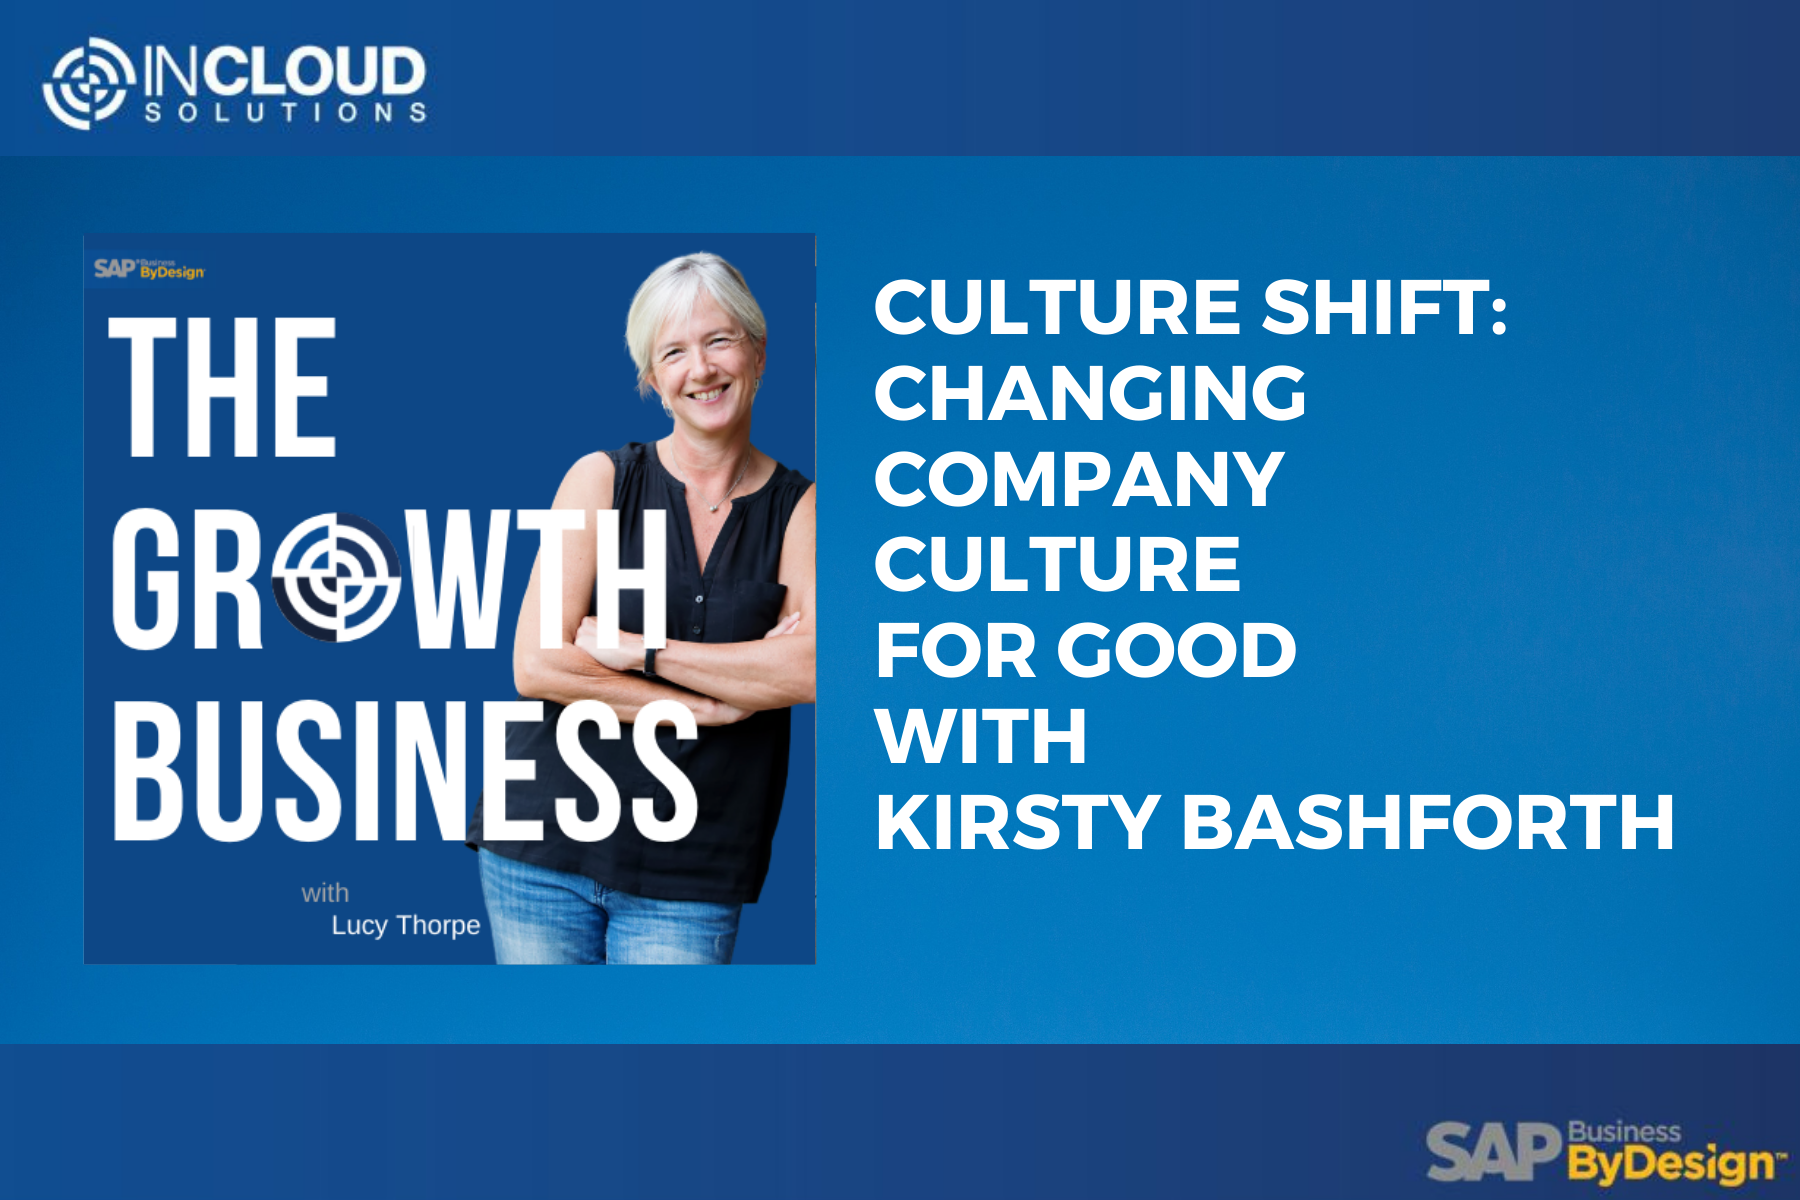 Culture shift changing company culture